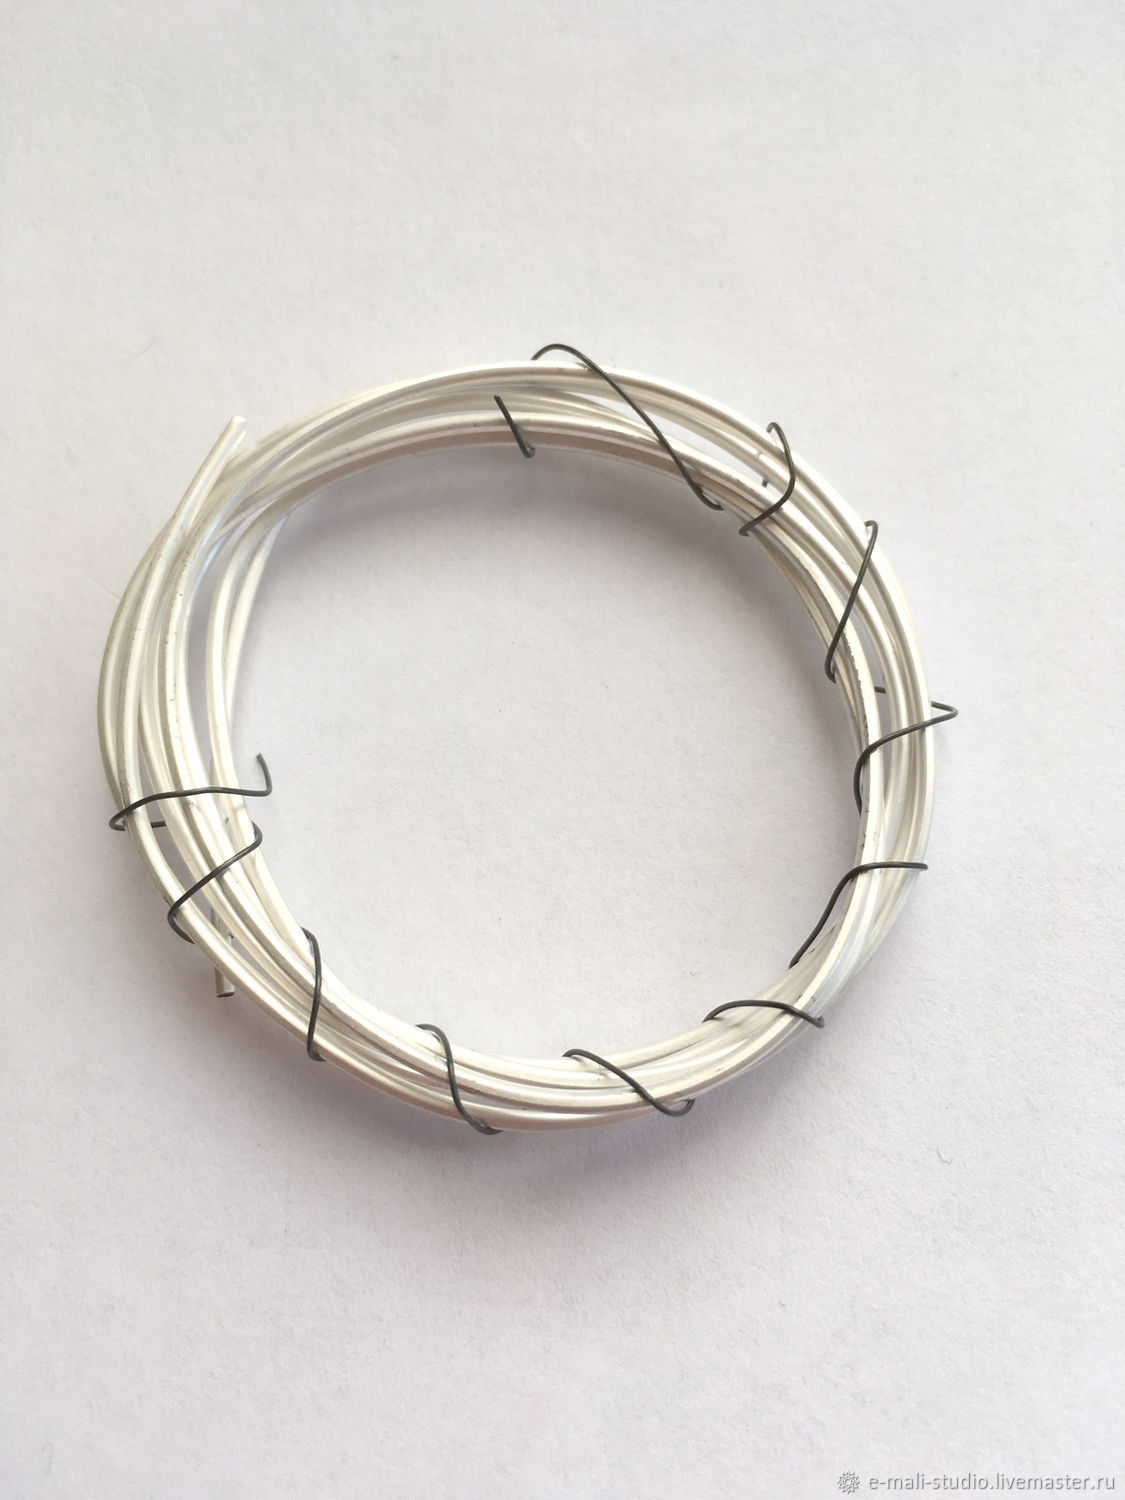 Wire circular cross section 1,2 mm 925 sterling silver, Wire, St. Petersburg,  Фото №1